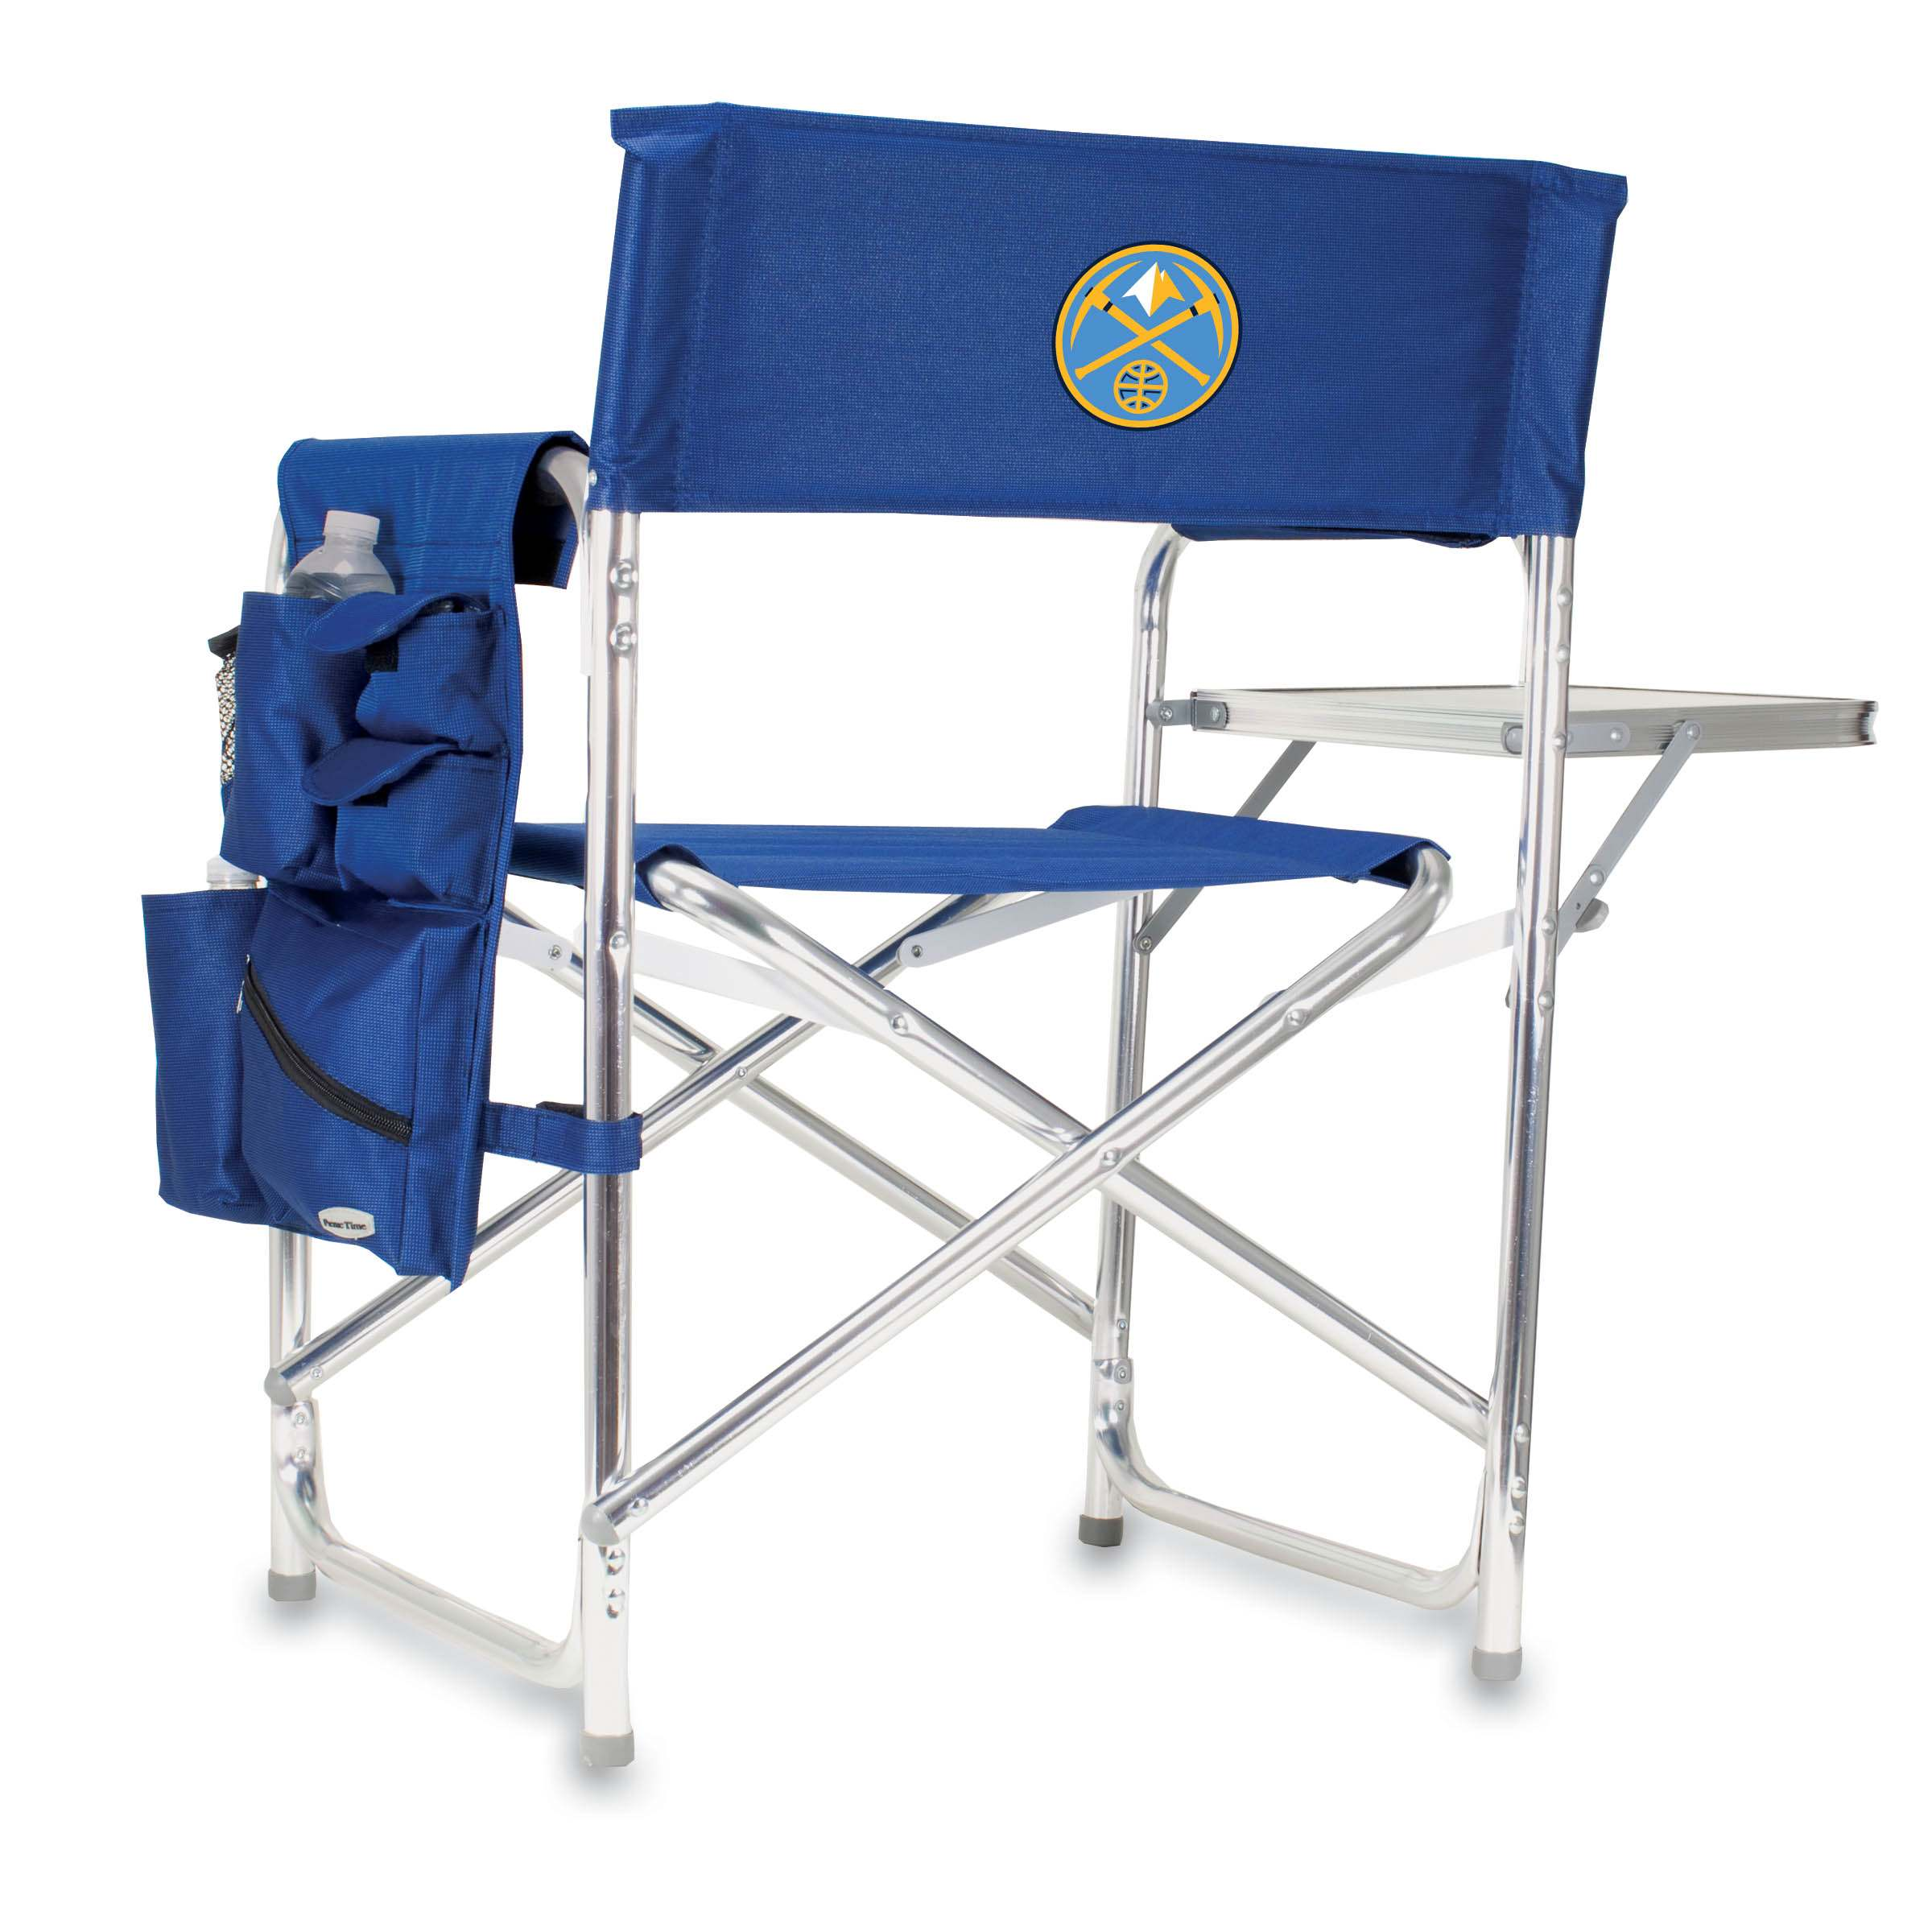 Picnic Time Nba Sports Chair Denver Nuggets